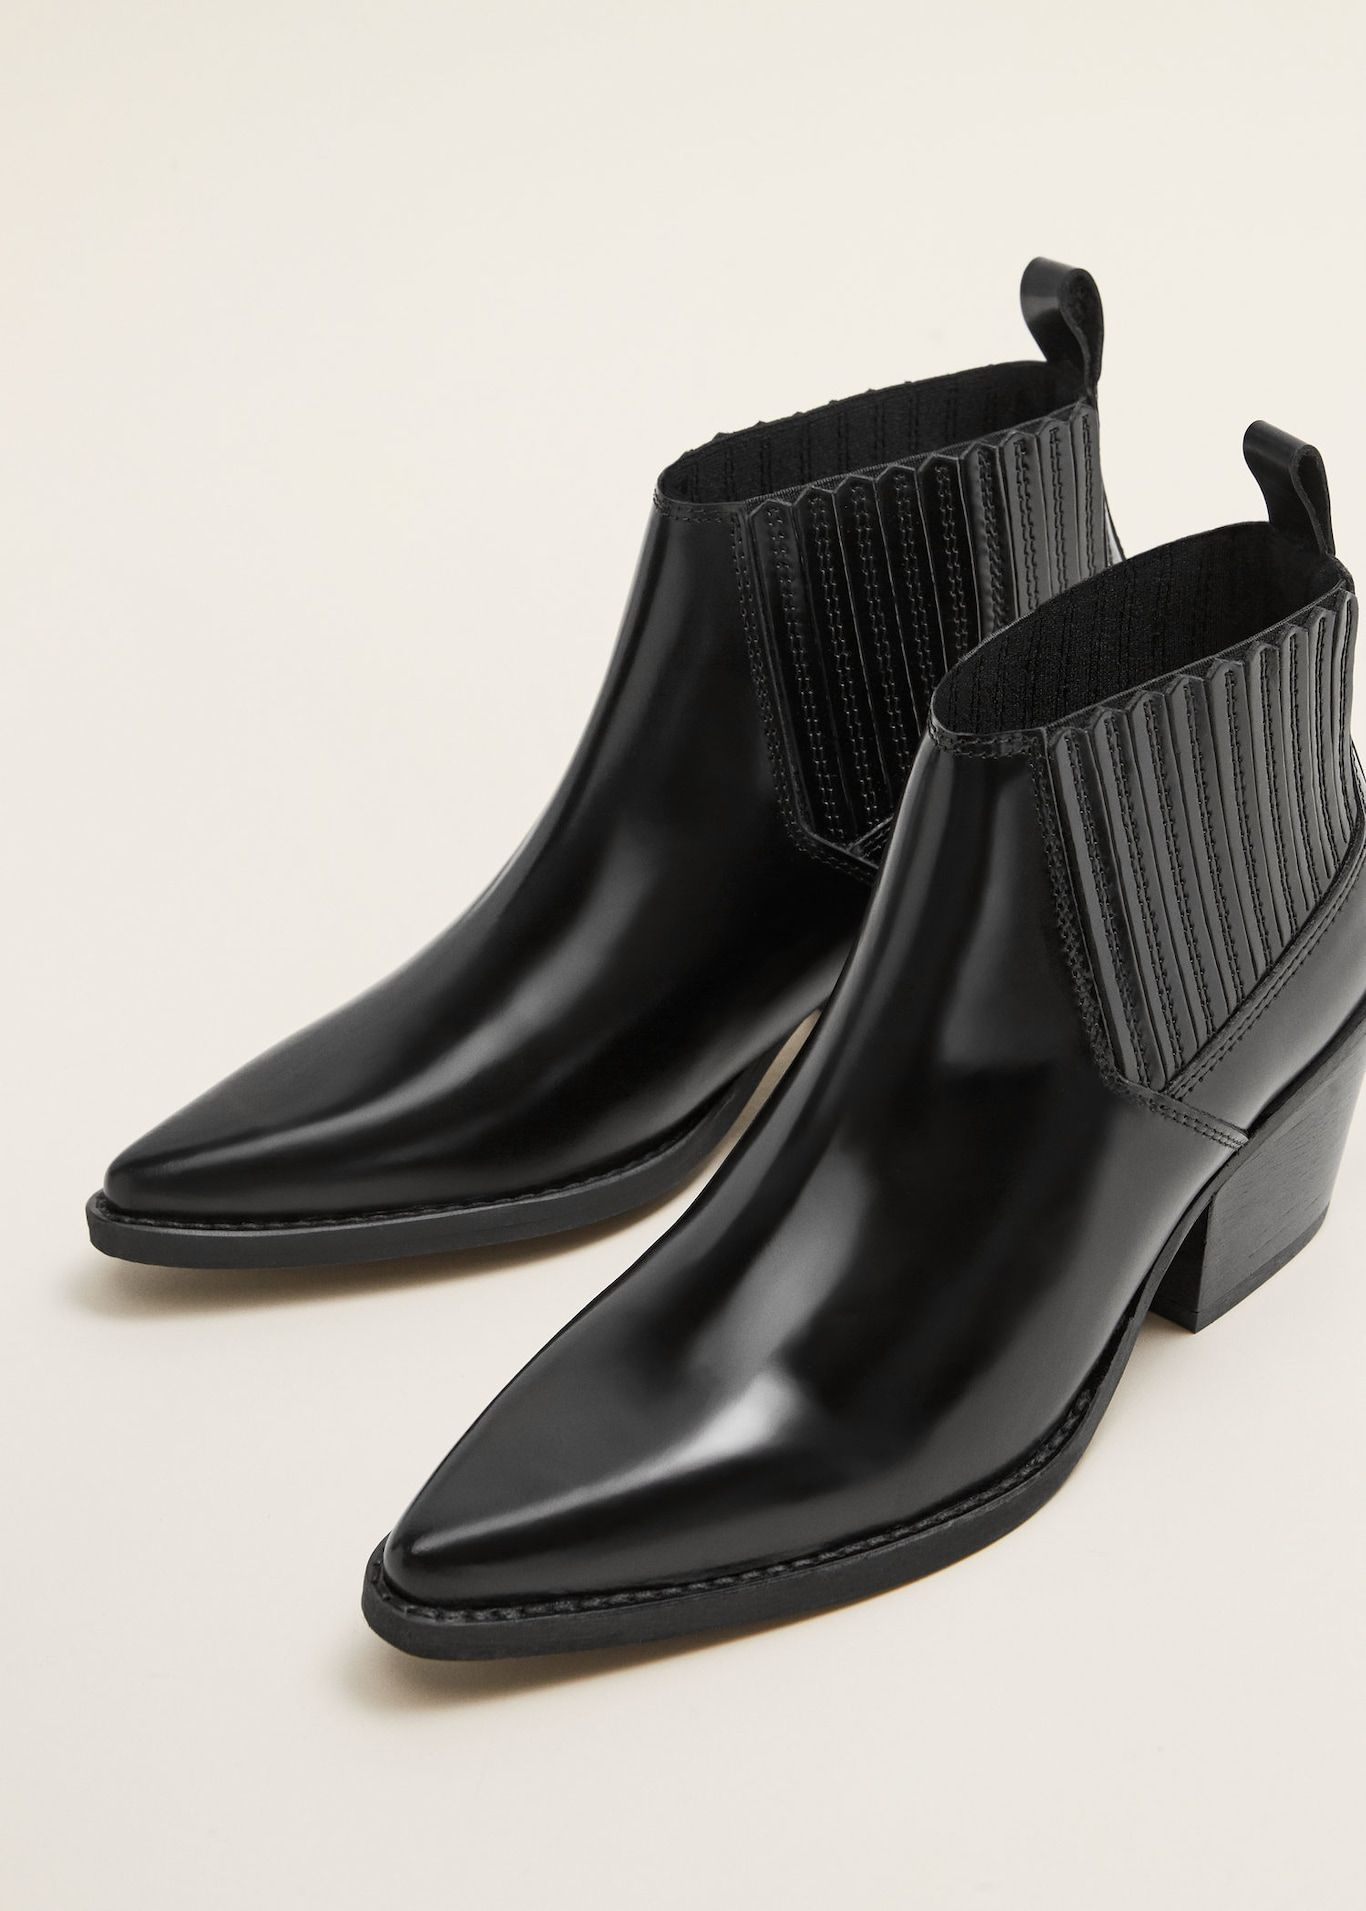 d505b18f1a8 Leather pointed ankle boots - Woman in 2019 | Wishlist | Pointed ...